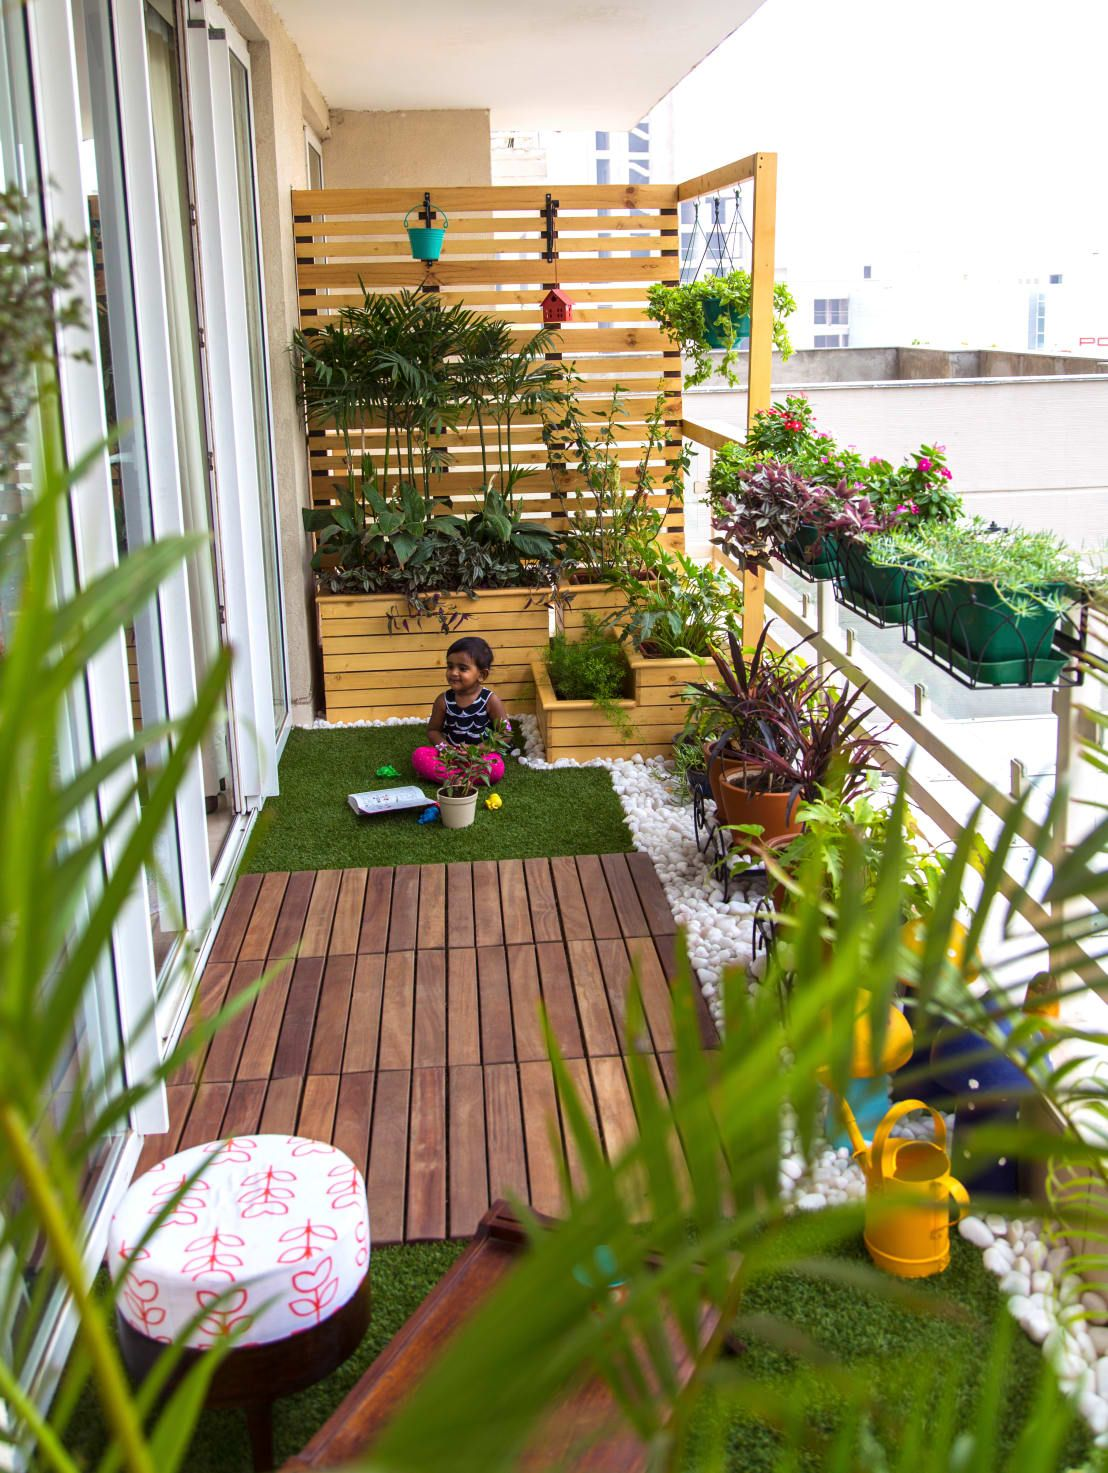 10 Smart Balcony Garden Ideas That are Awesome  Small balcony